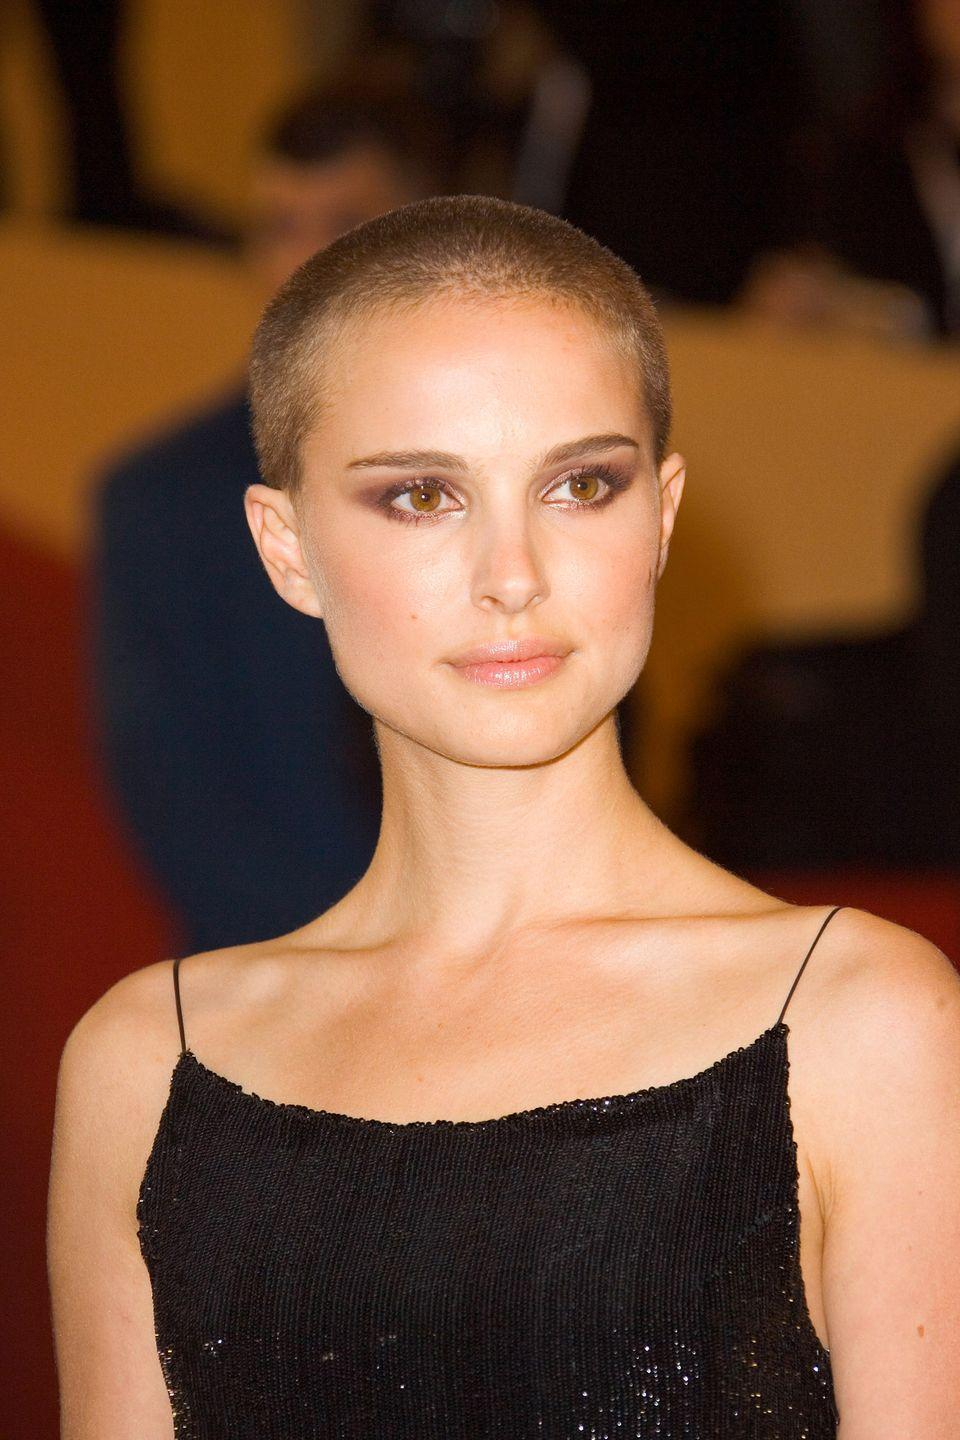 <p>Natalie Portman temporarily sacrificed her signature long brunette locks for a starring role in <em>V for Vendetta</em>. The actress ended up getting the super short buzz on camera while filming a dramatic torture scene.</p>